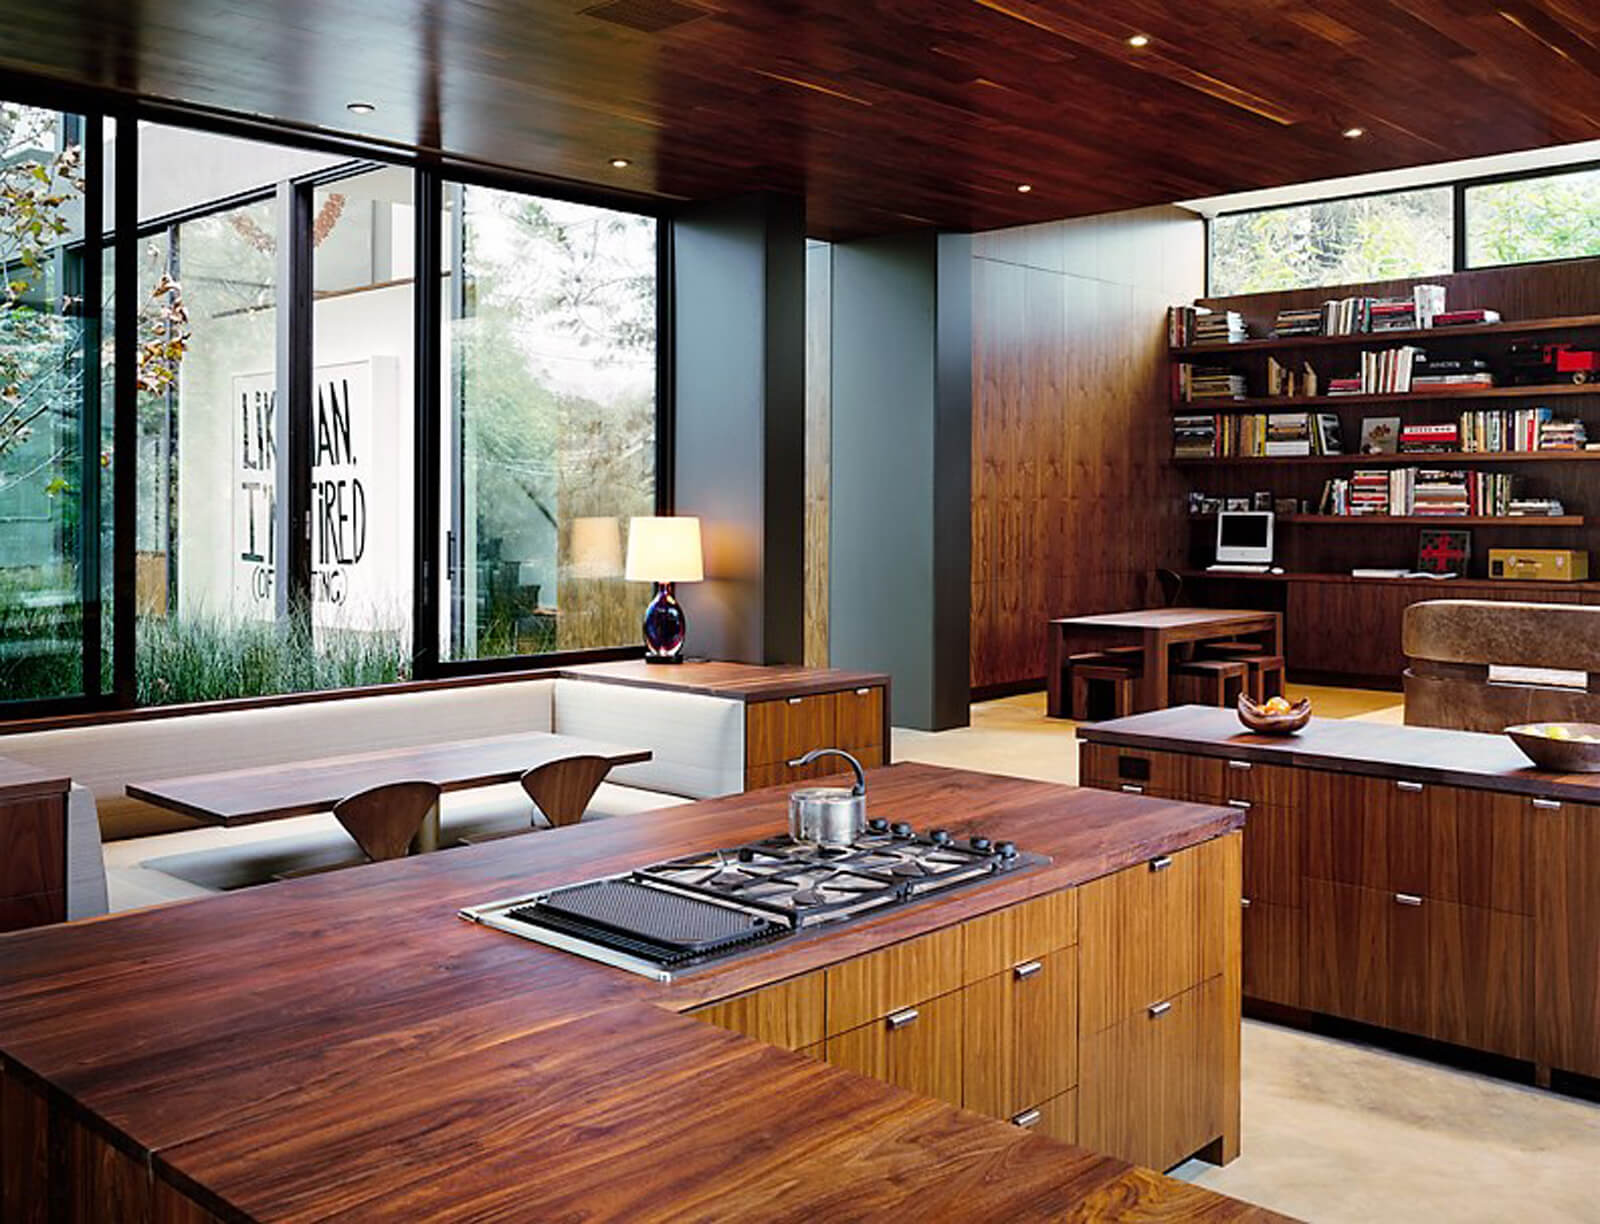 An all wood kitchen with a dining nook by the glass window offering a built-in seating fitted with white leather cushions and wooden dining table with matching chairs.